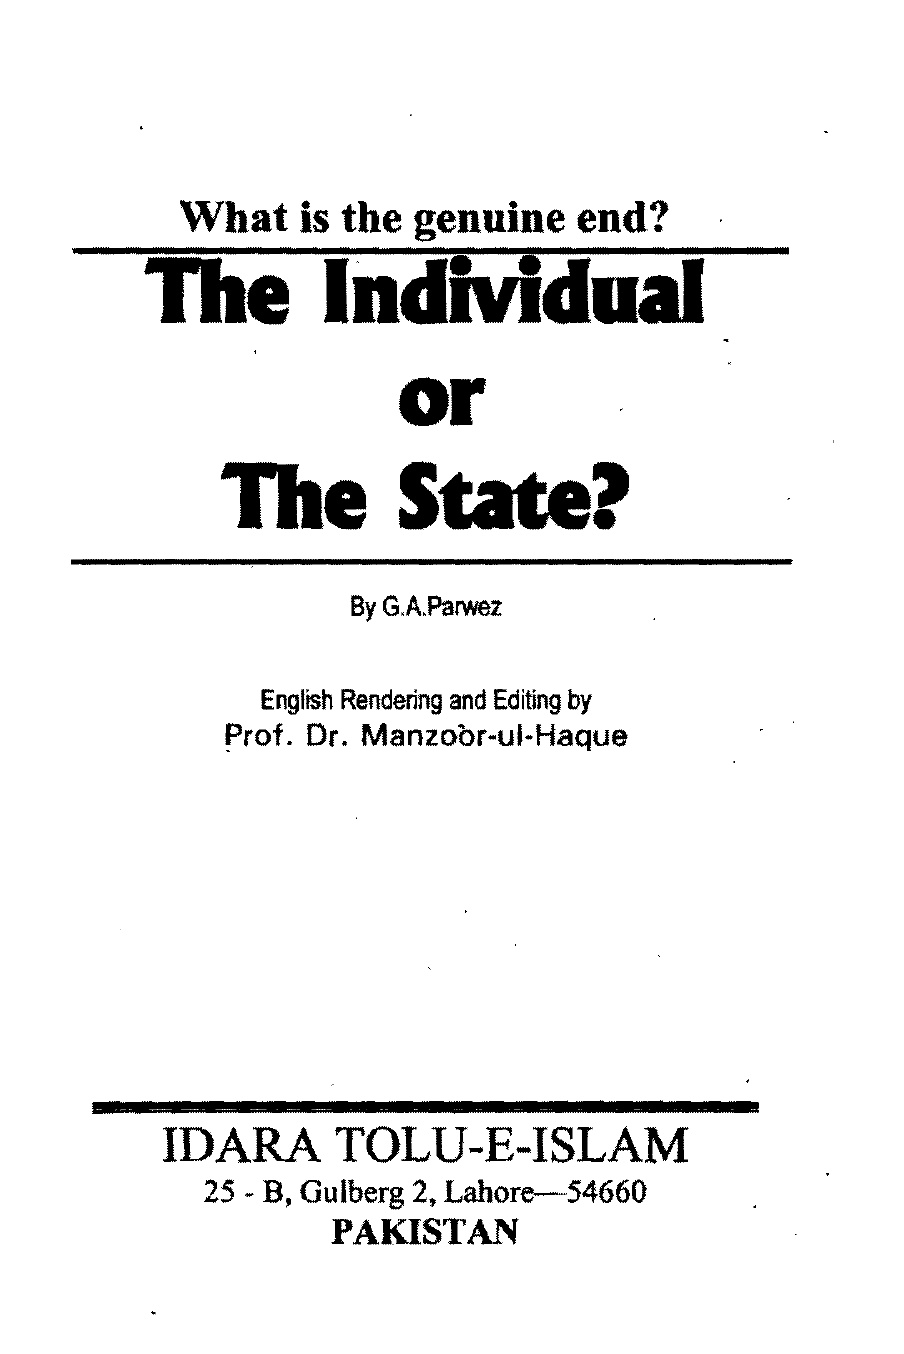 The-Individual-or-the-state